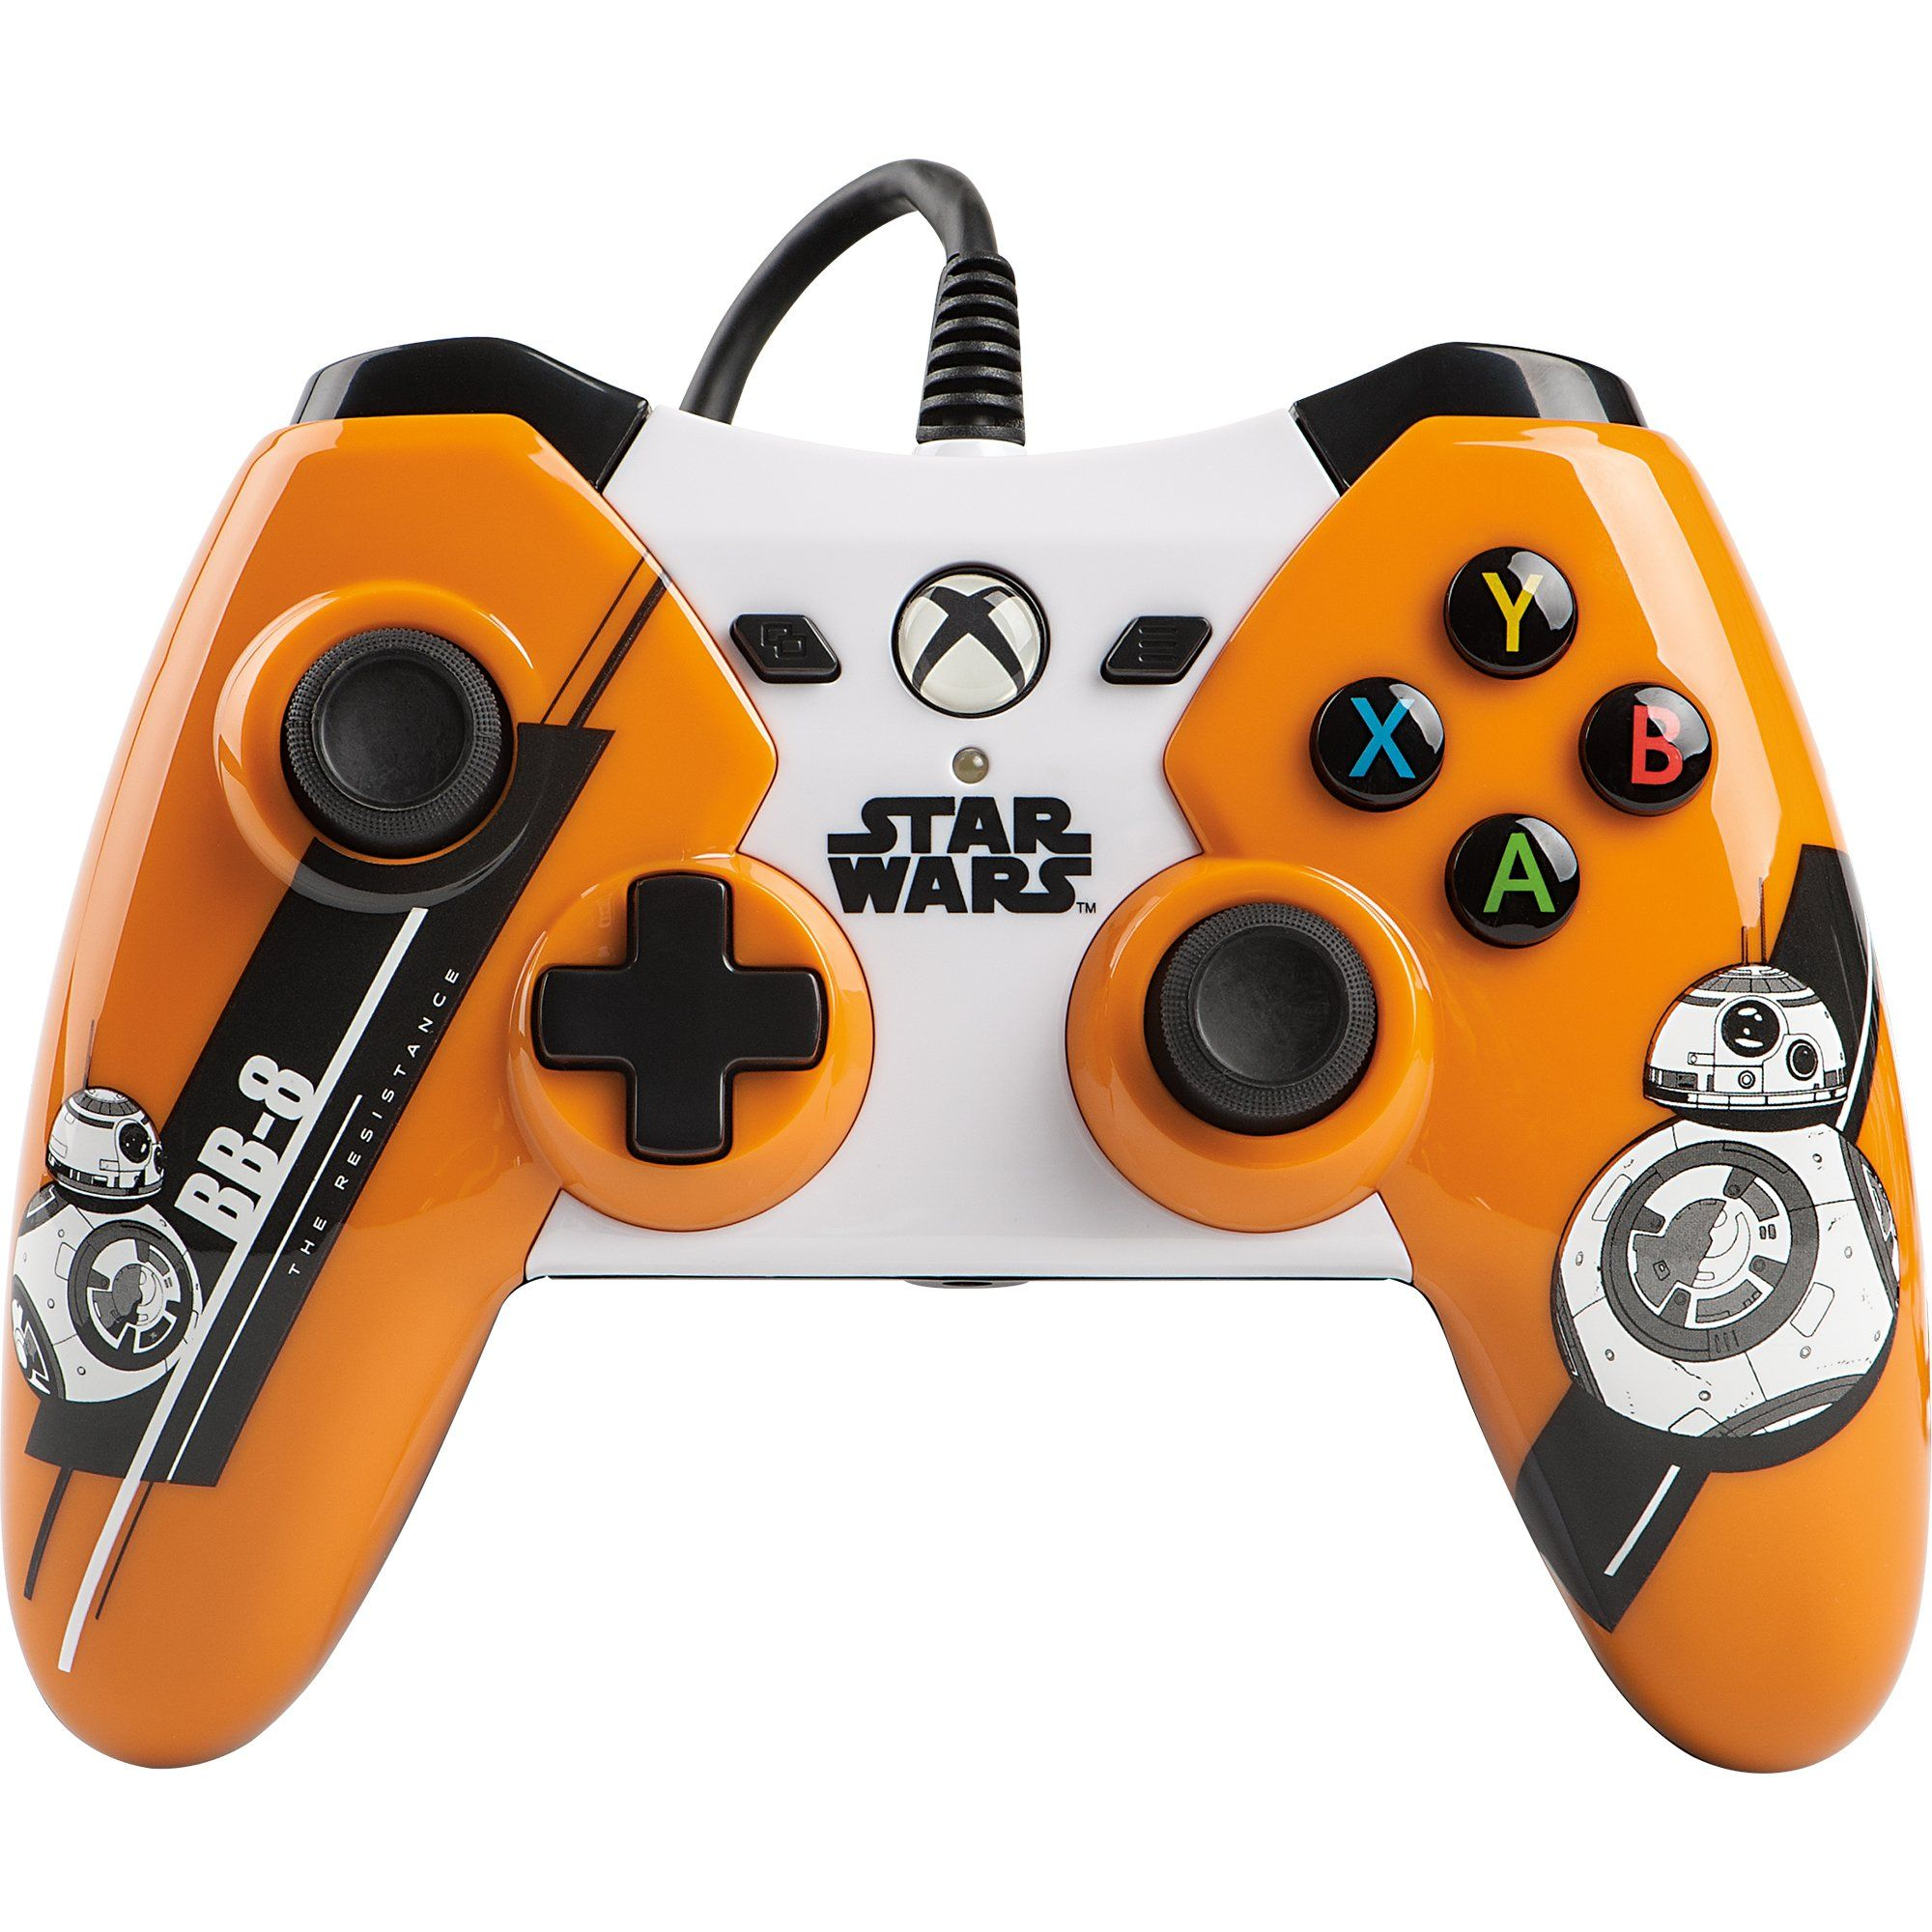 Star Wars Bb8 Wired Controller For Xbox One Be Sure To Check Out This Remarkable Item This Is An Affiliat Star Wars Xbox One Xbox One Controller Xbox One